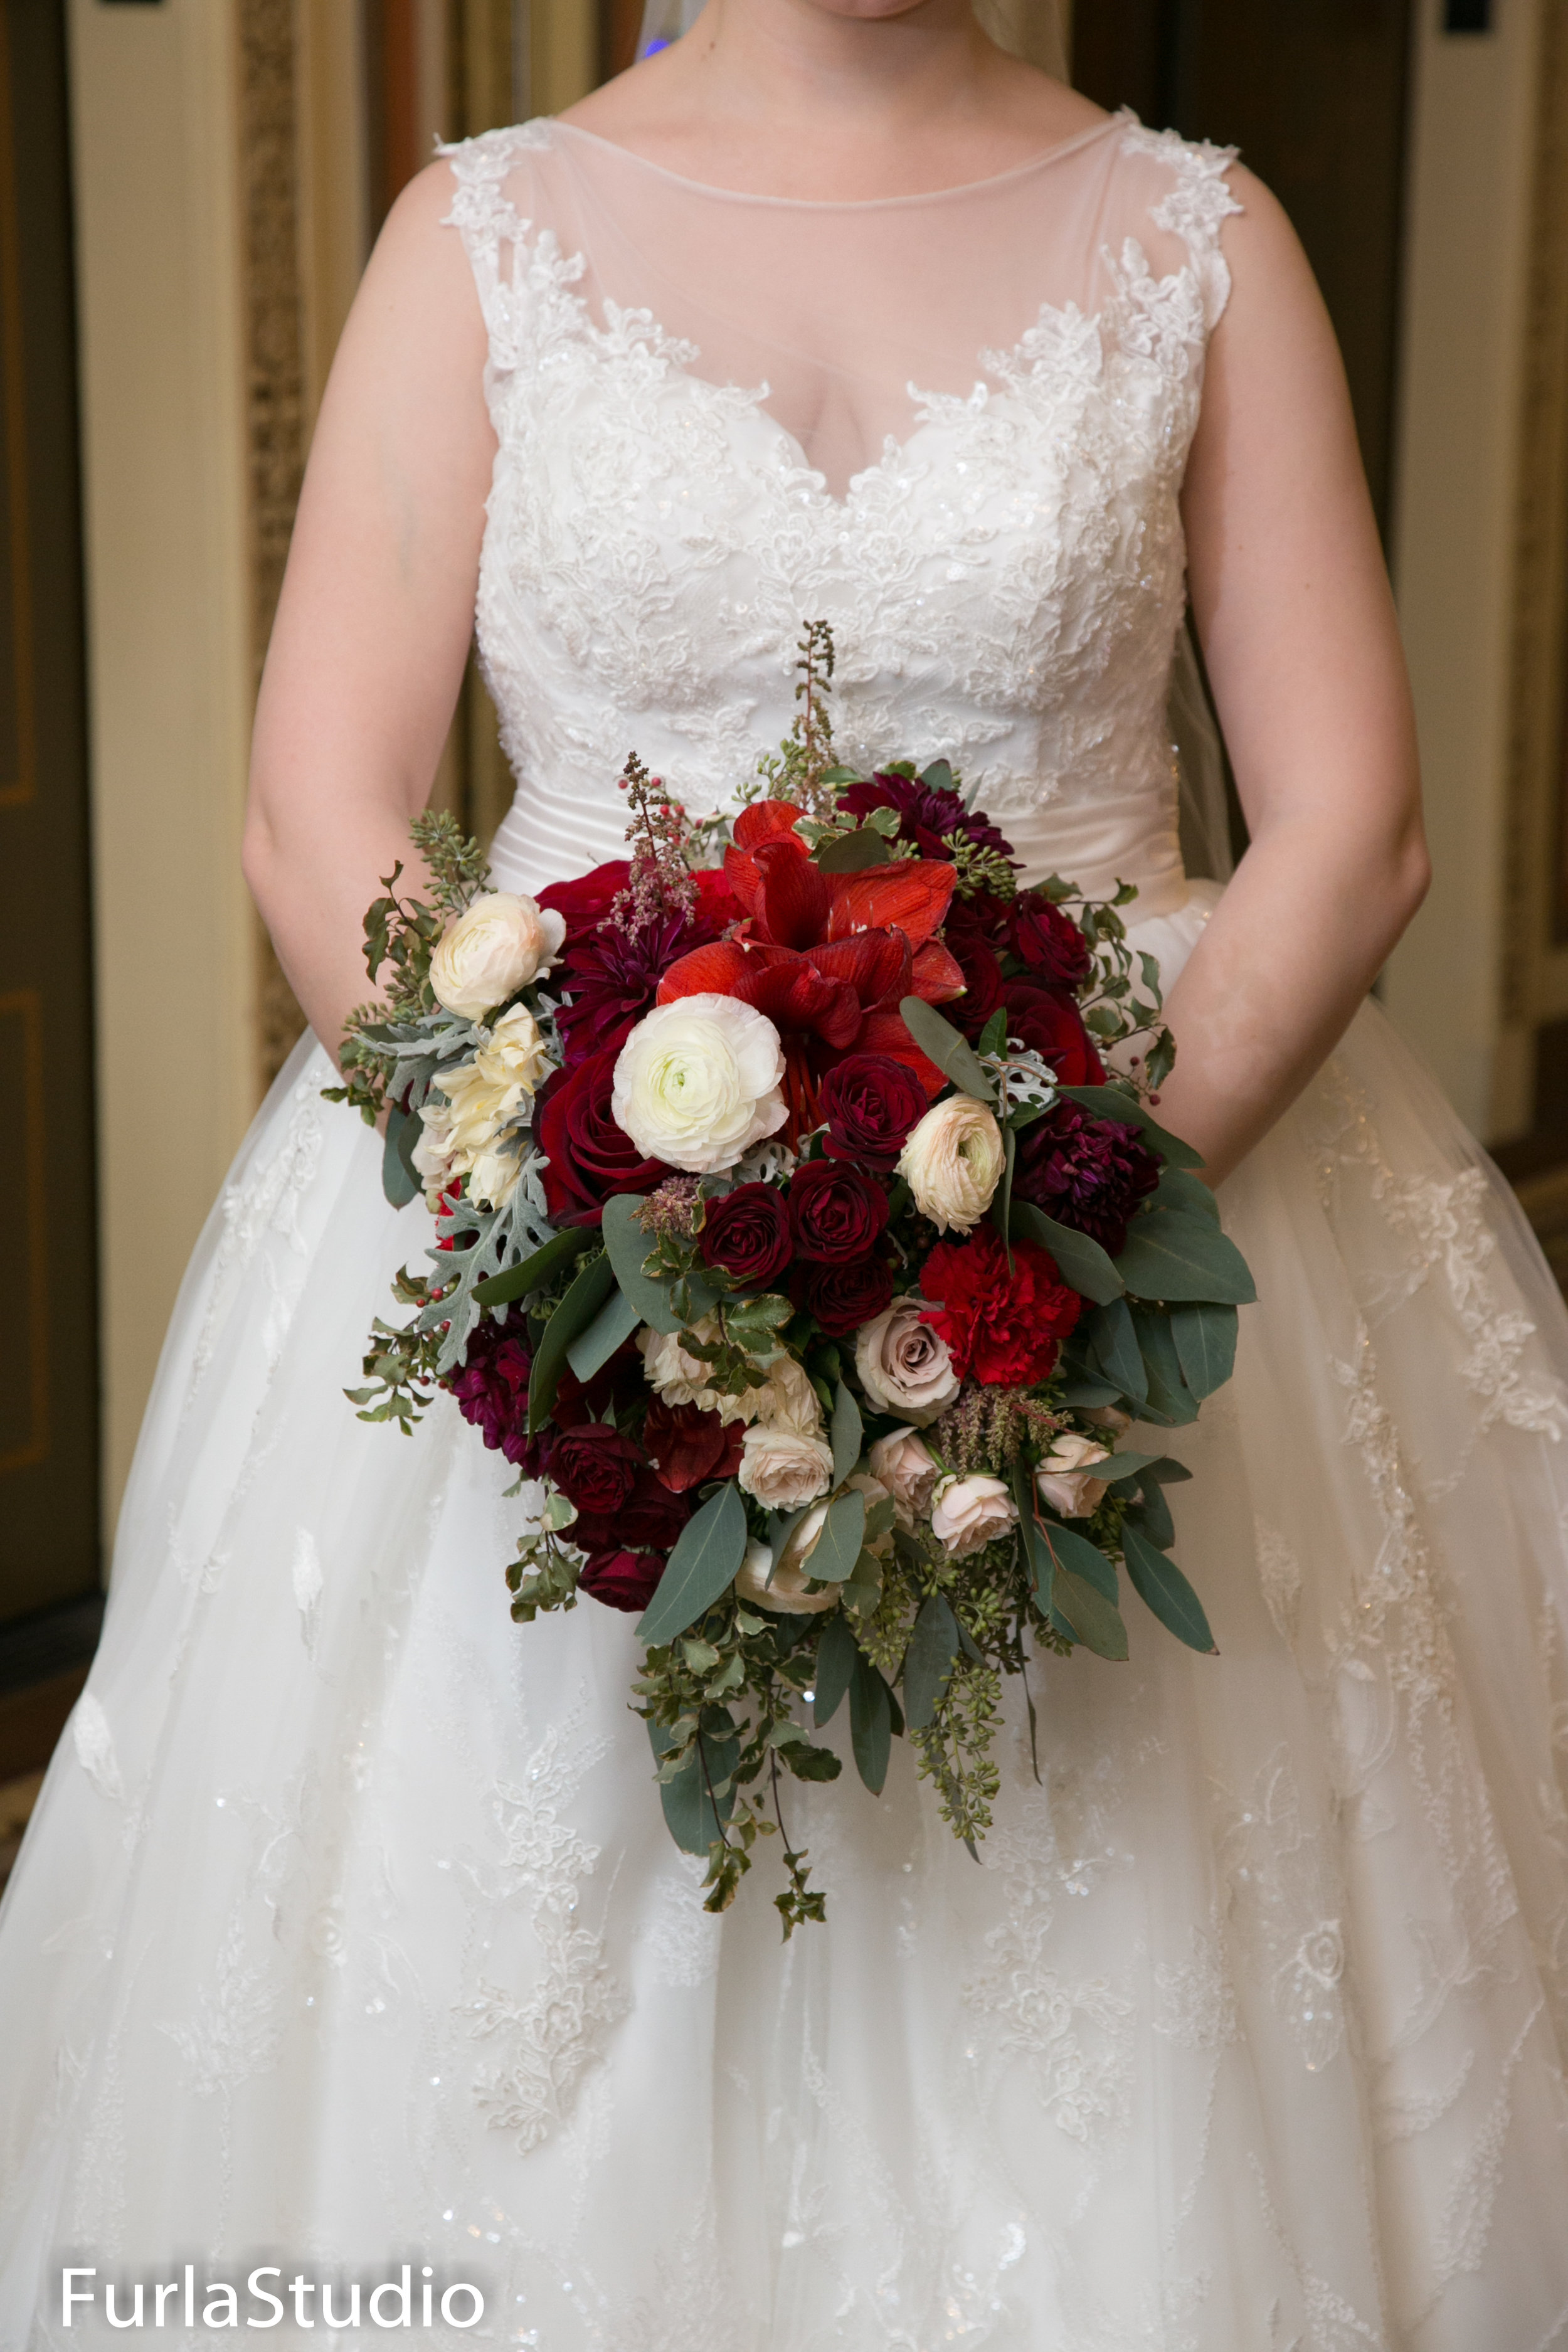 Gorgeous winter wedding bouquet with red, white and burgundy roses. Cascading bouquets are gorgeous in Chicago winter weddings   Your Day by MK   Chicago Wedding Planner   MK Andersen